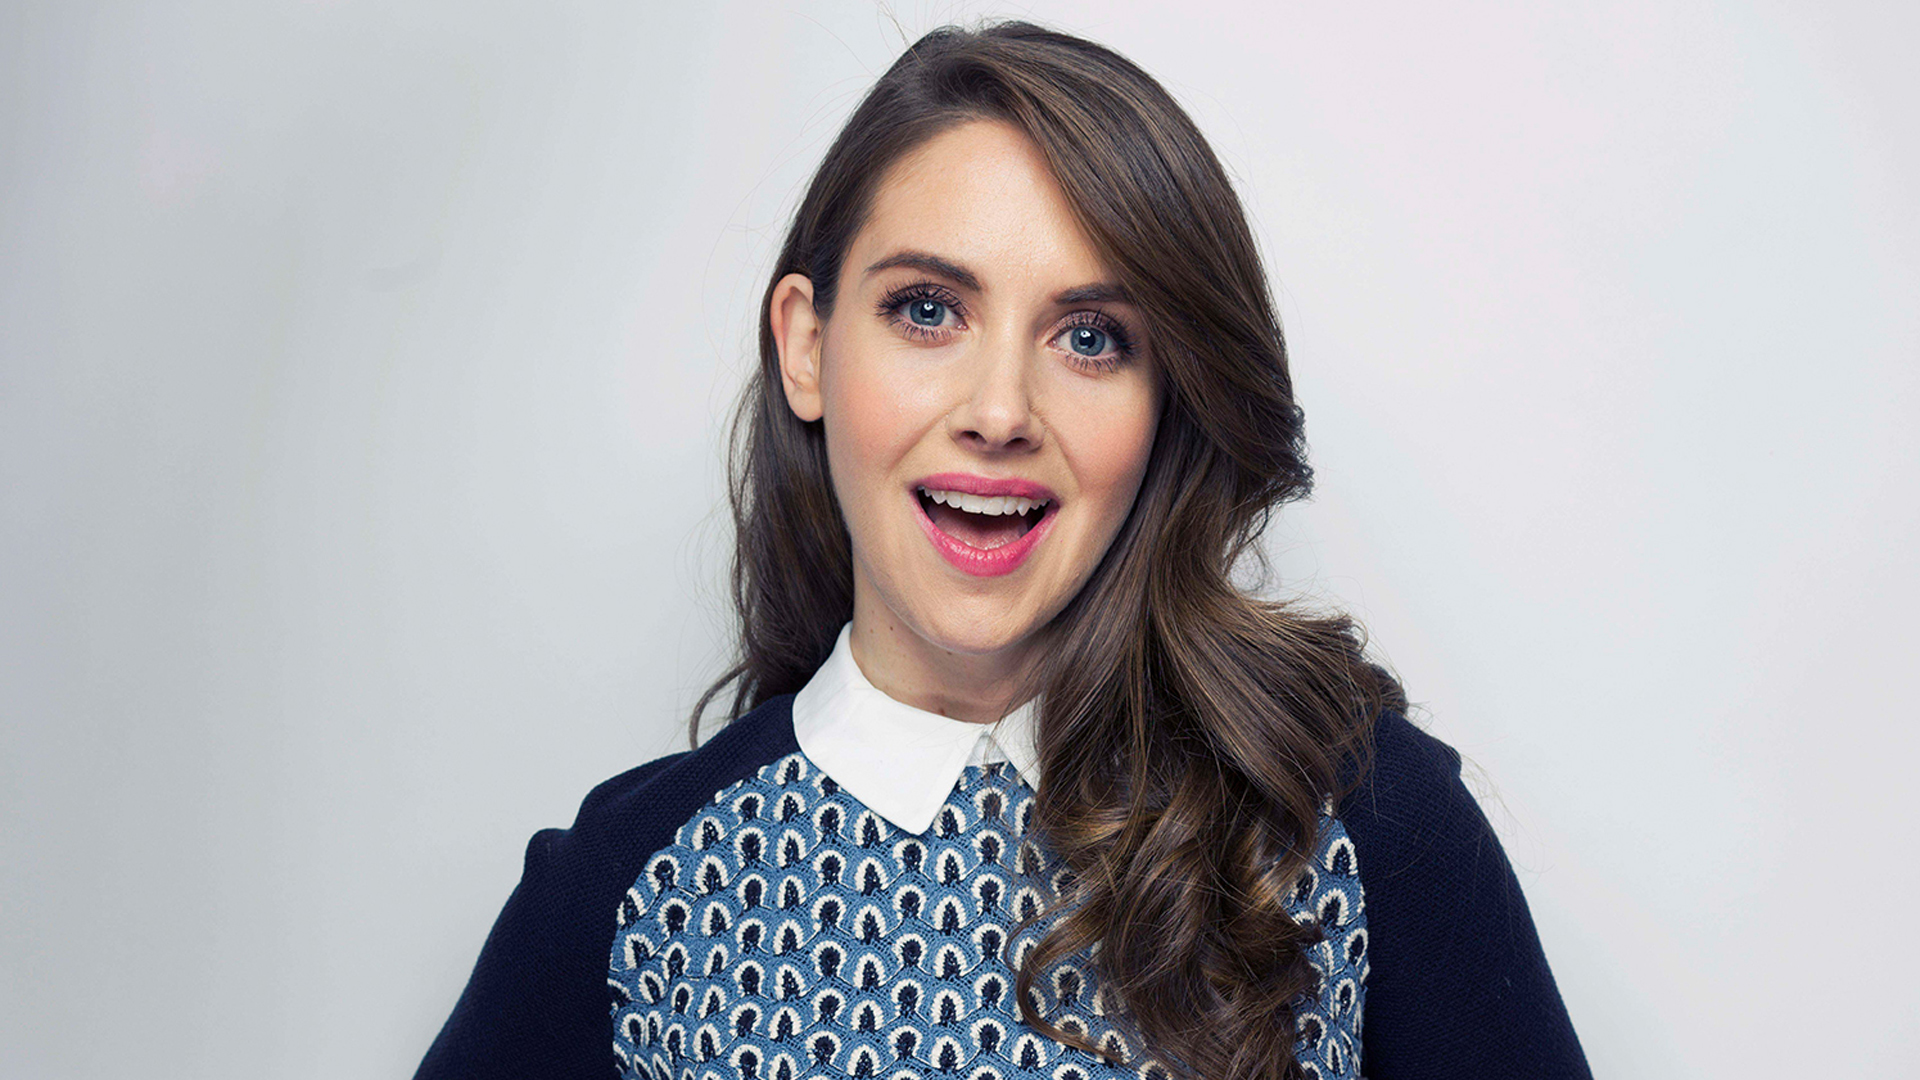 1920x1080 - Alison Brie Wallpapers 15